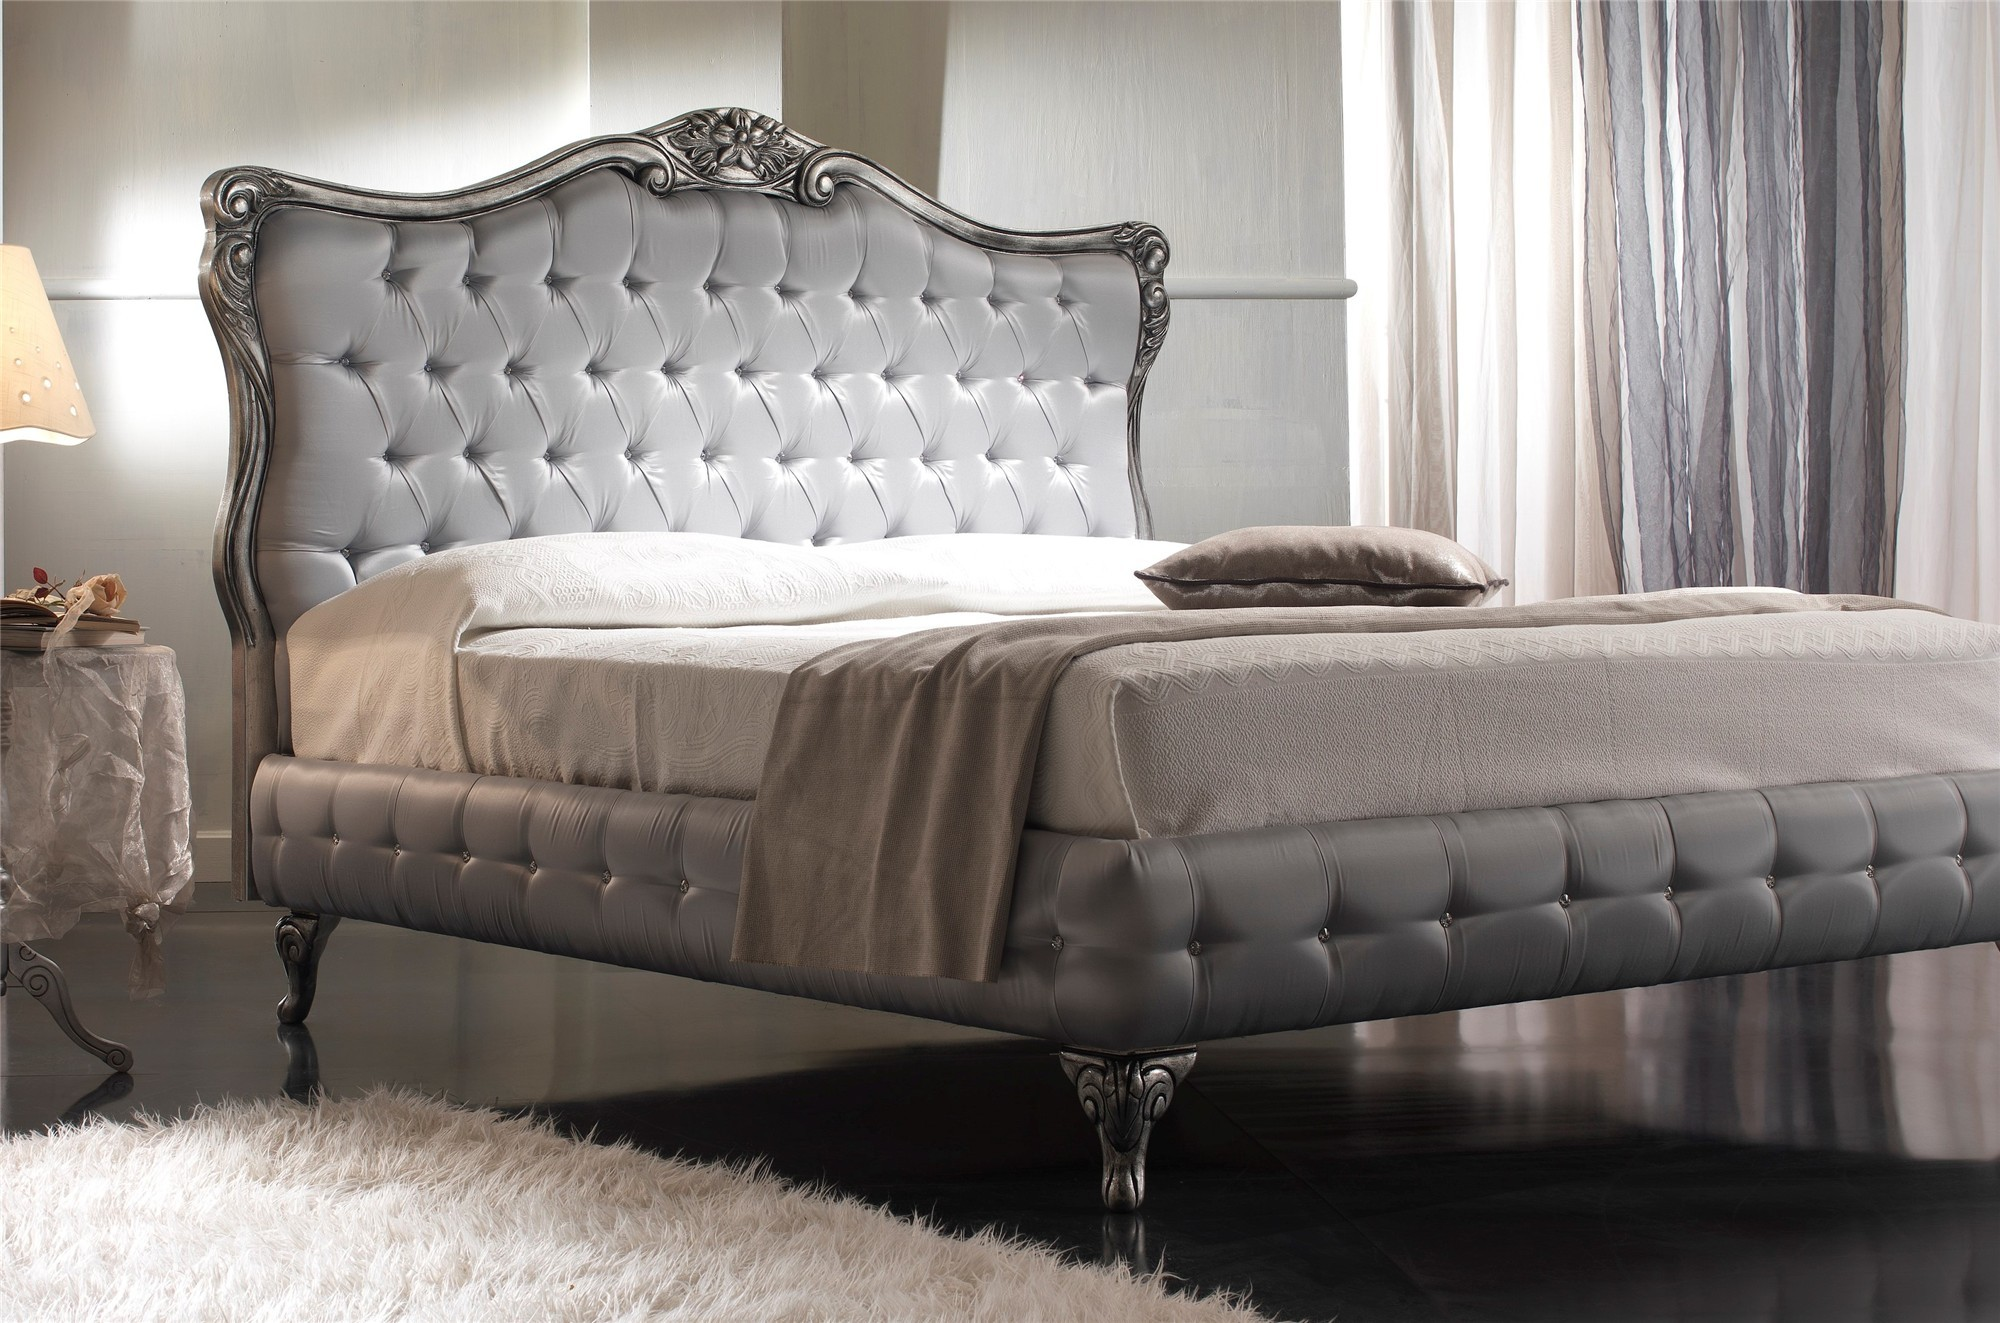 Quarrata Clara Luxury Traditional Italian Bed With Crystals